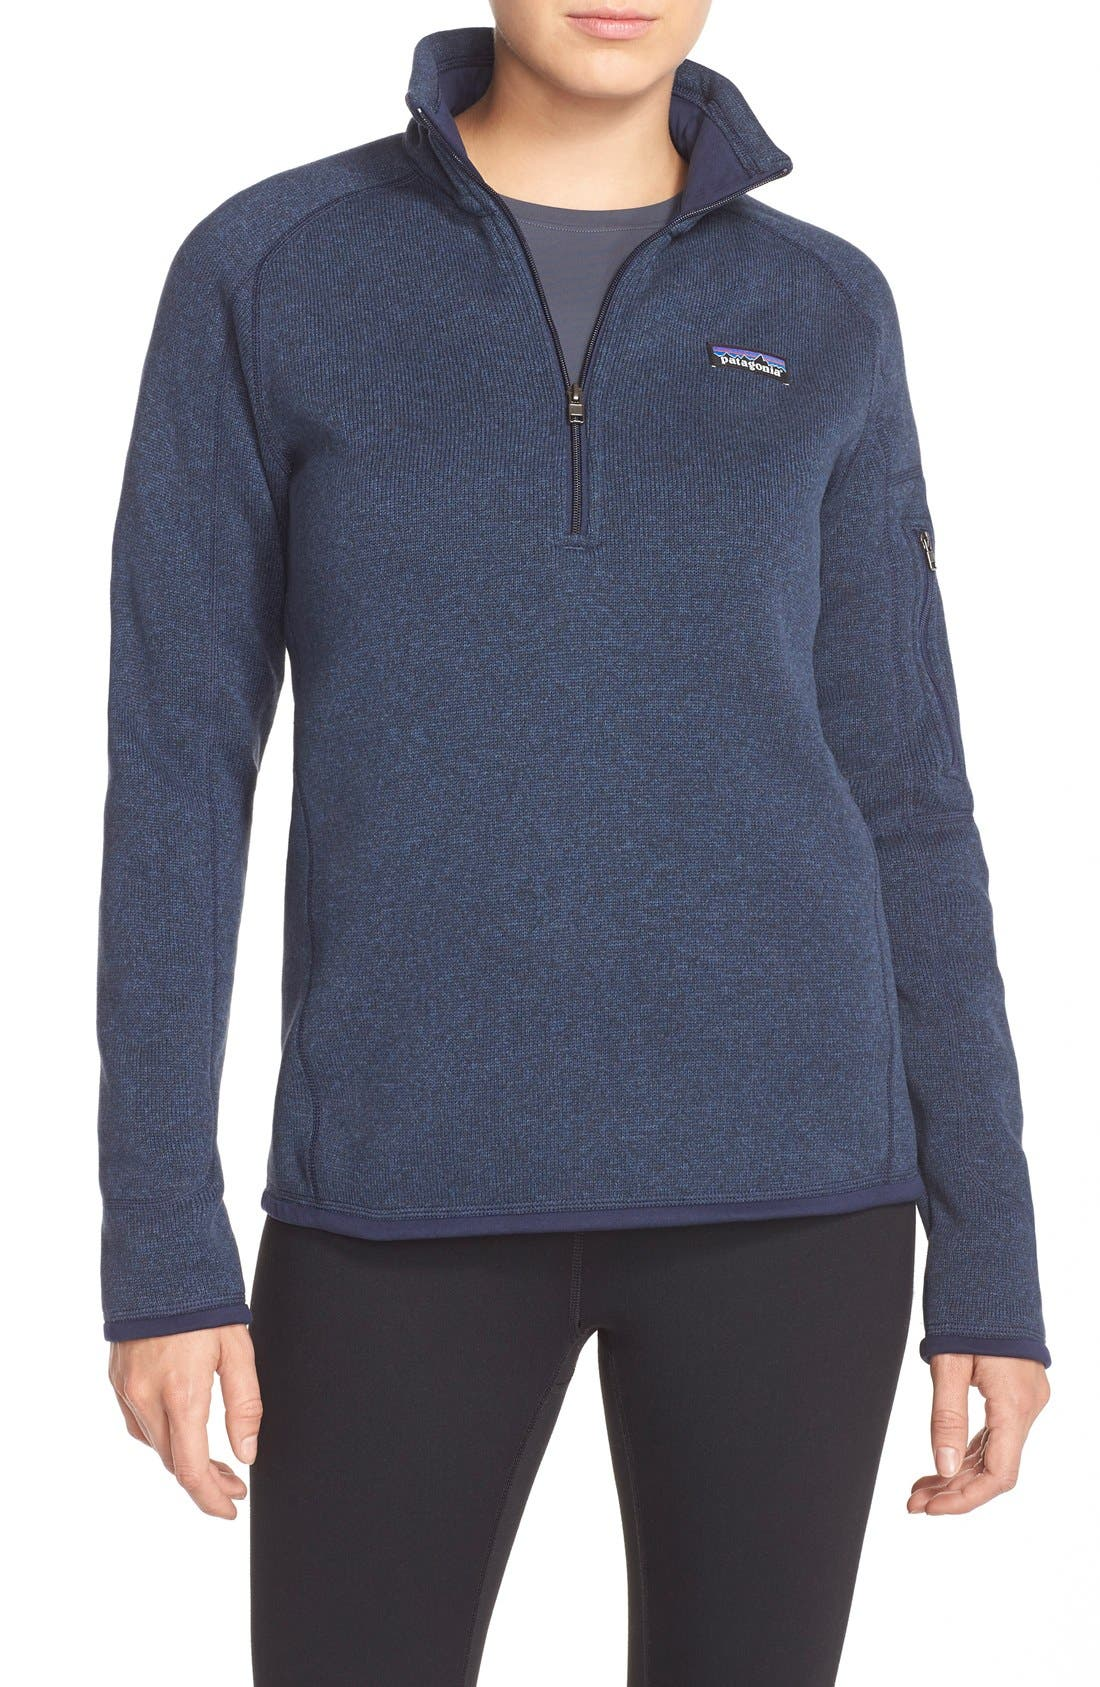 PATAGONIA, Better Sweater Zip Pullover, Main thumbnail 1, color, CLASSIC NAVY